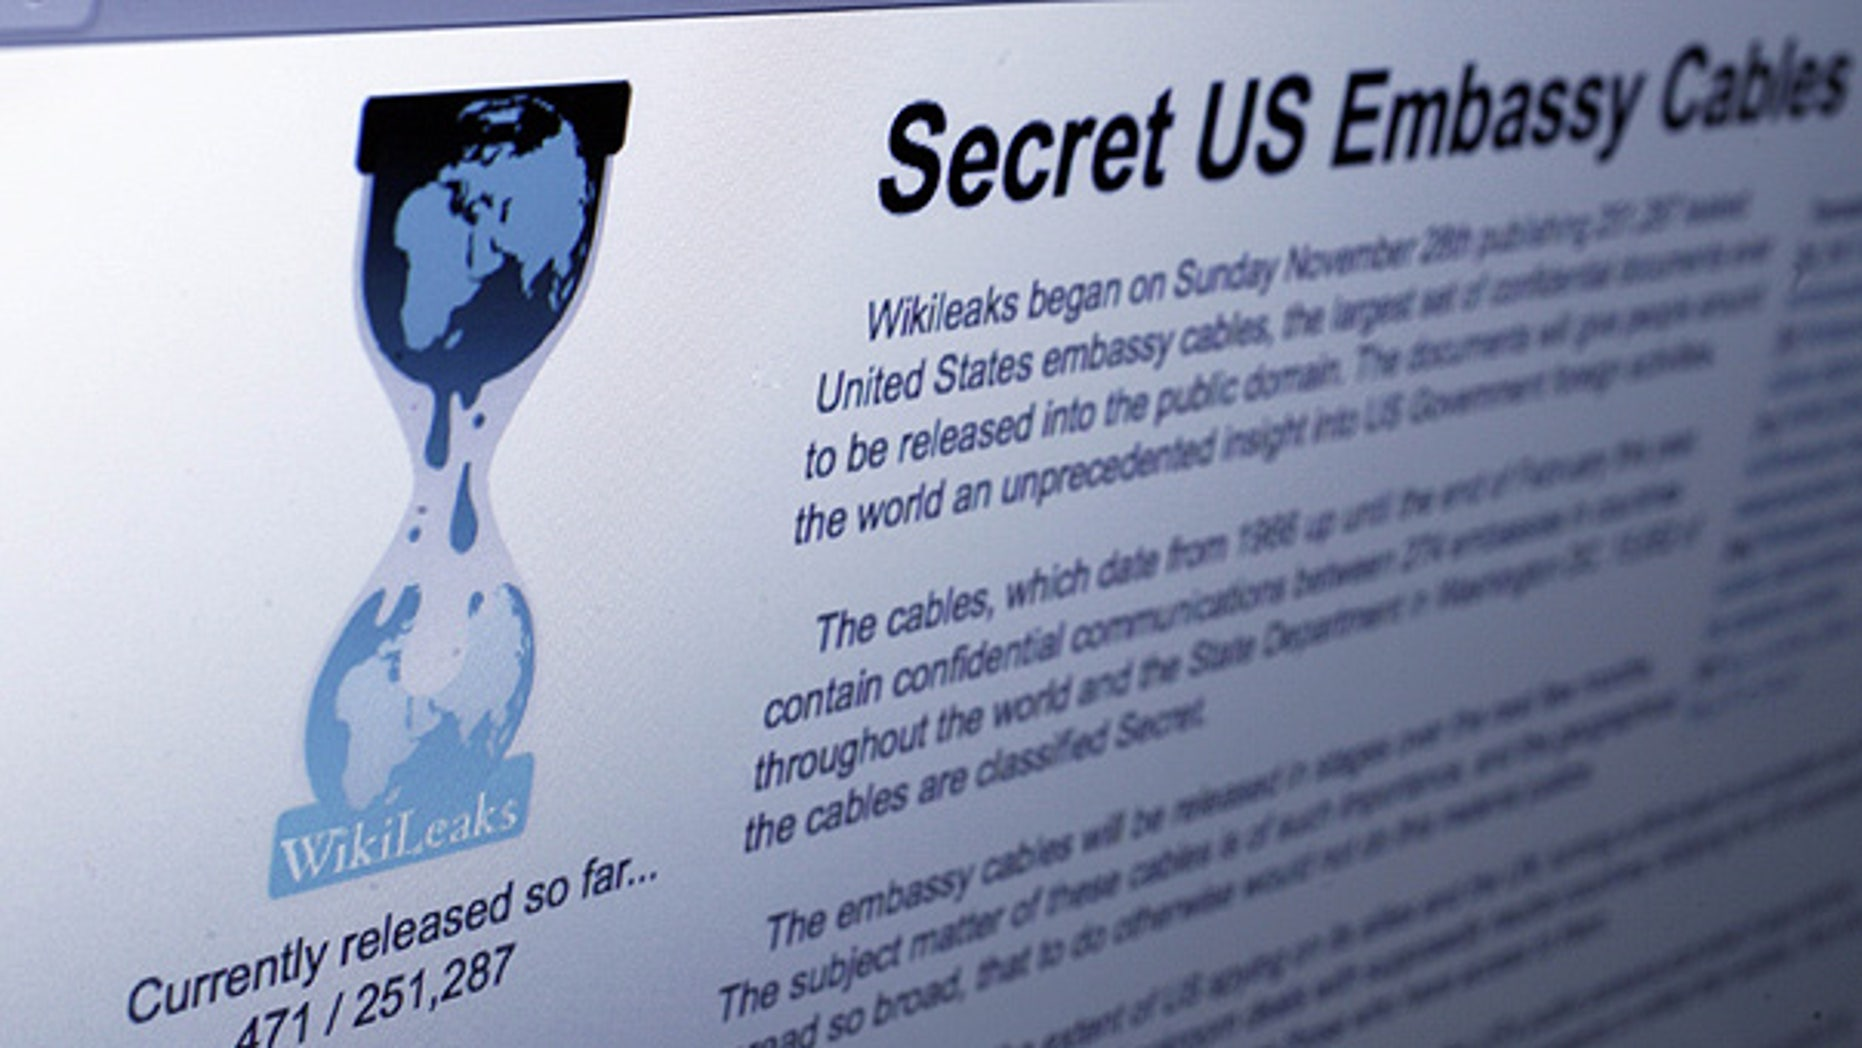 WikiLeaks.org was taken offline by its domain name provider on Dec. 3 after becoming the target of 'mulitple' attacks.